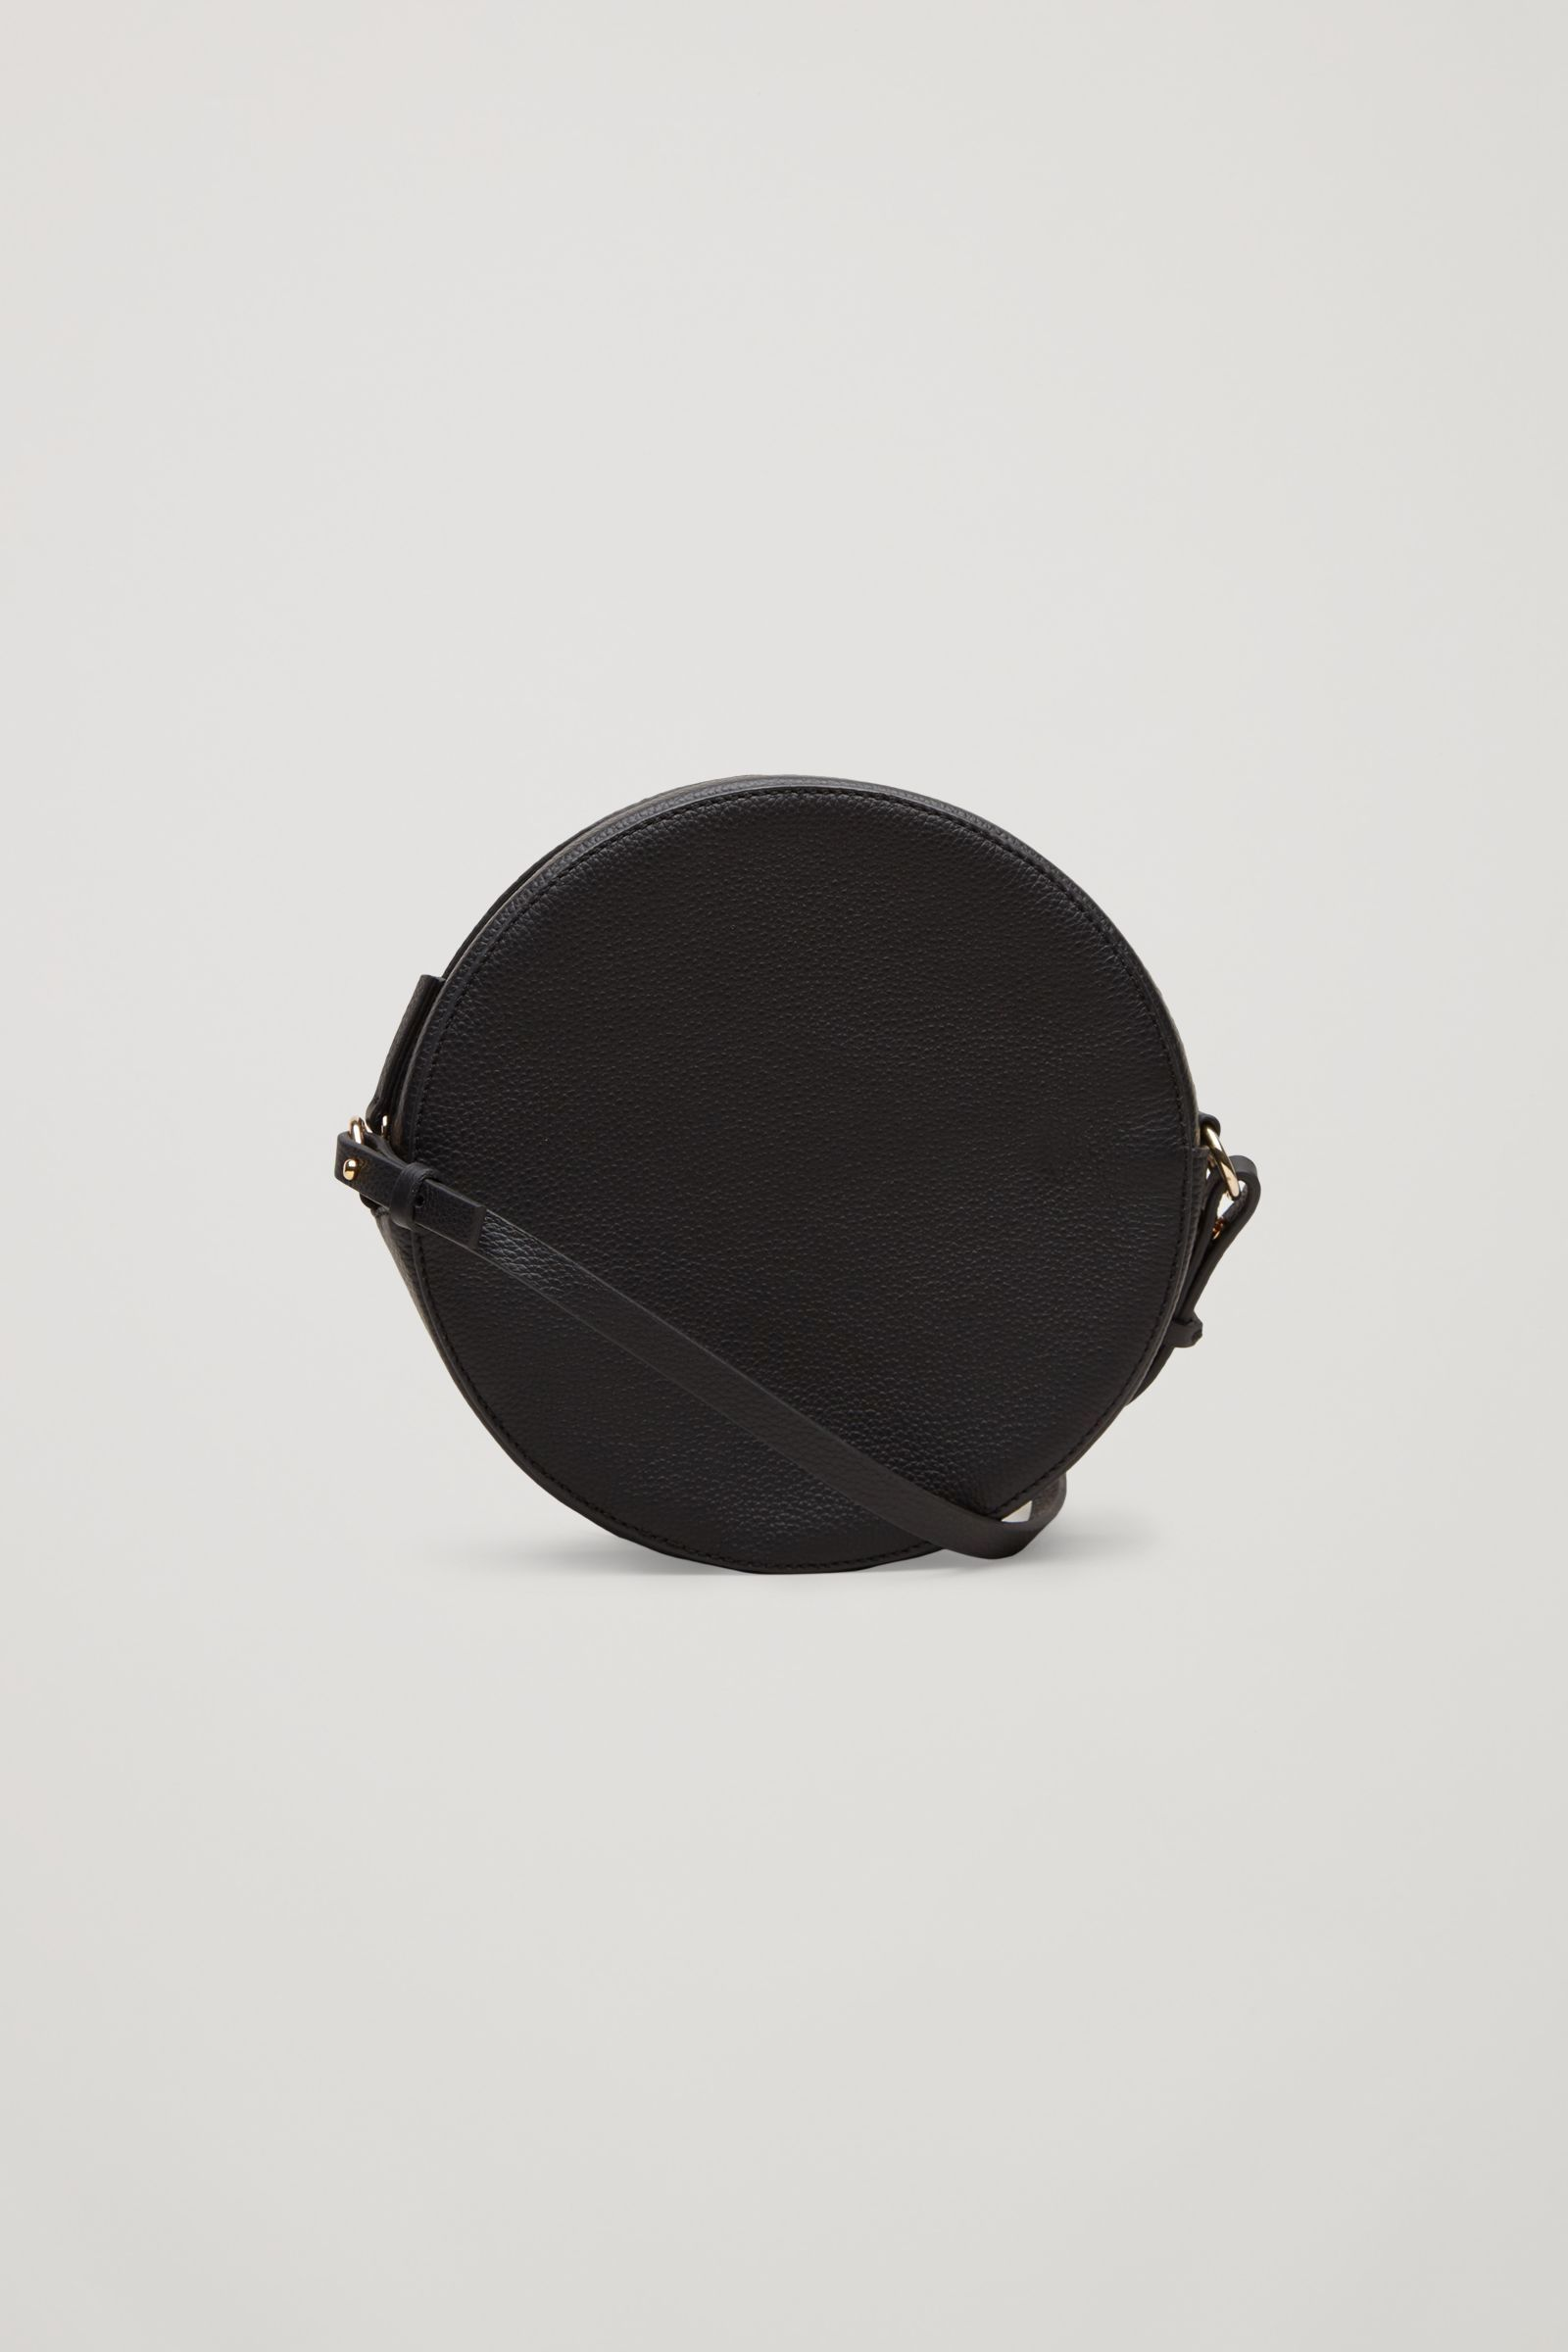 4085725504cbb8 COS Circular shoulder bag in Black | accessories. in 2019 | Bags ...